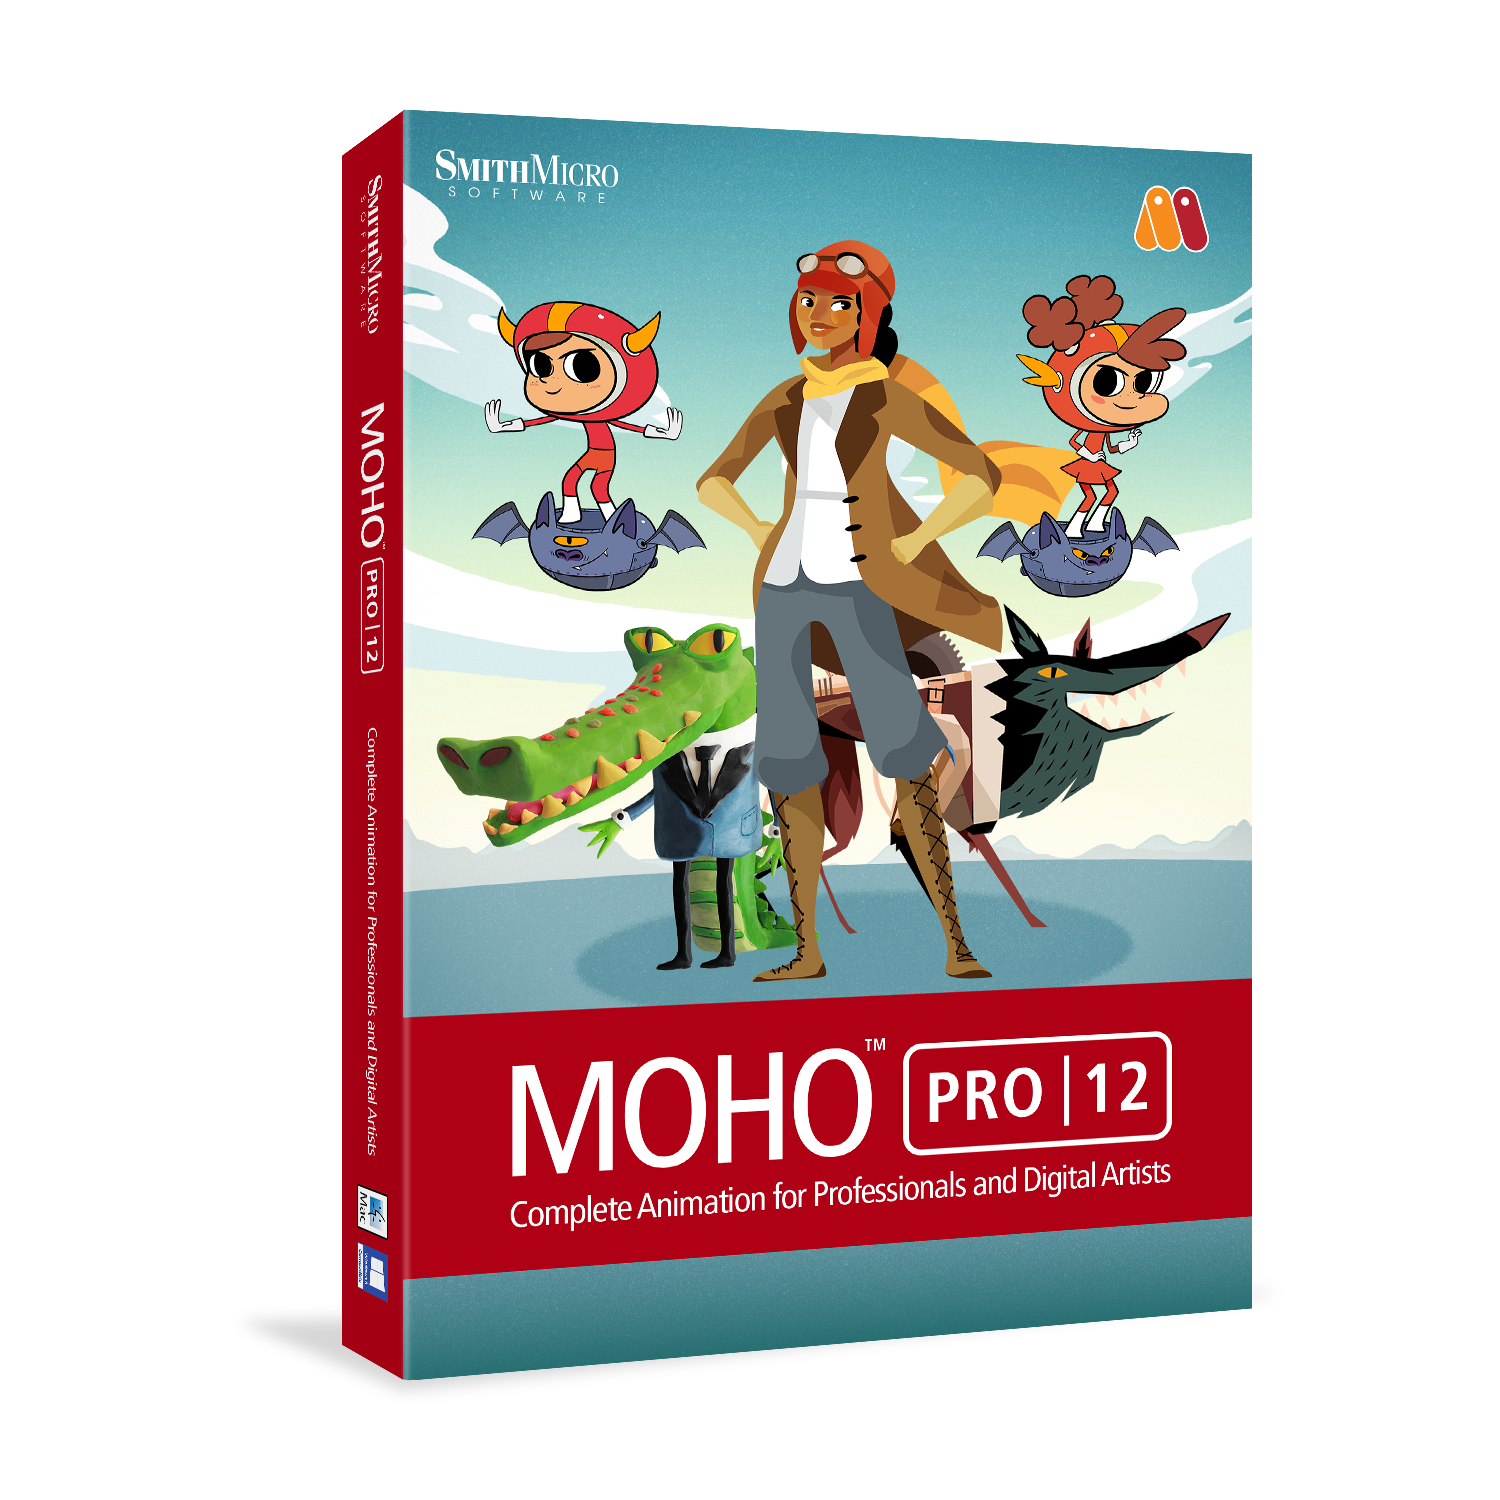 moho pro 12 2d animation software windows download